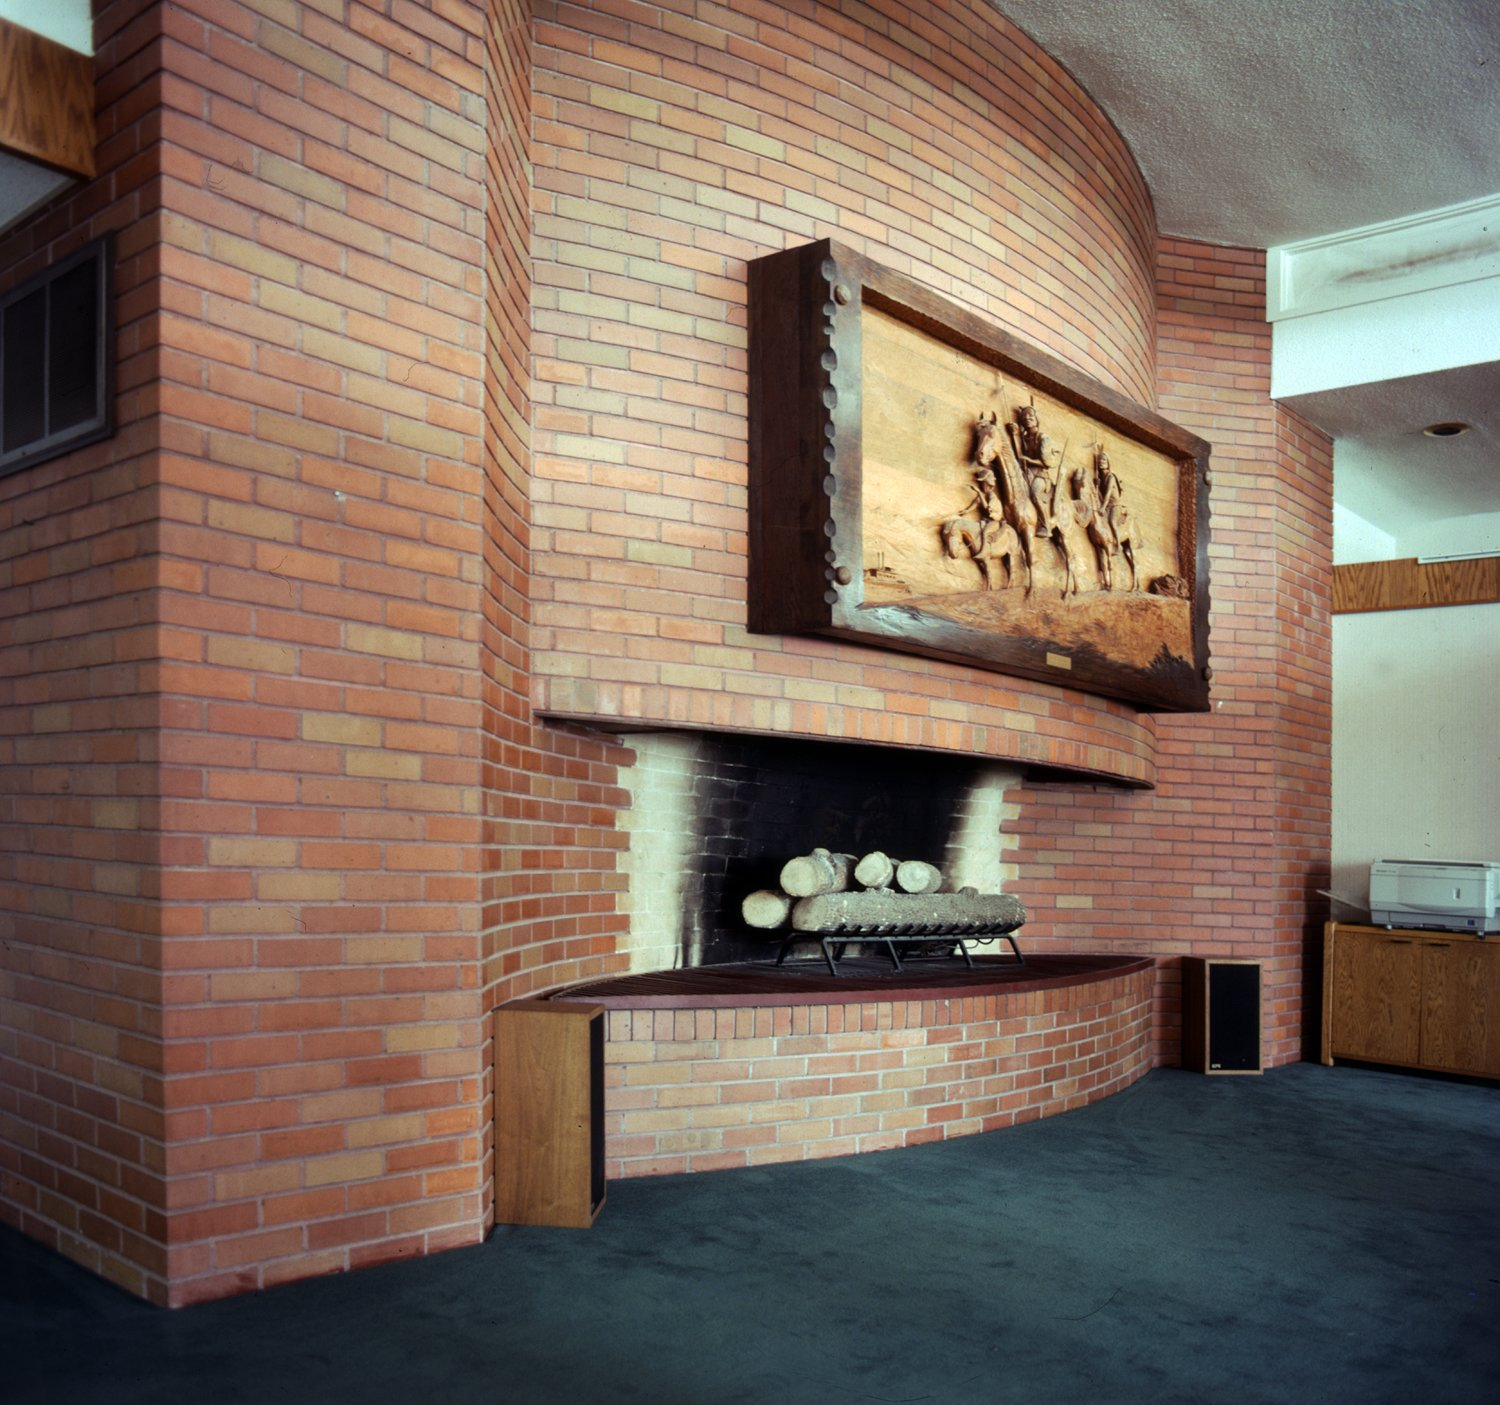 Living Room, Carpet Floor, Standard Layout Fireplace, and Wood Burning Fireplace  Photo 2 of 7 in Without a Buyer, This Frank Lloyd Wright Building Will Be Destroyed in 3 Days